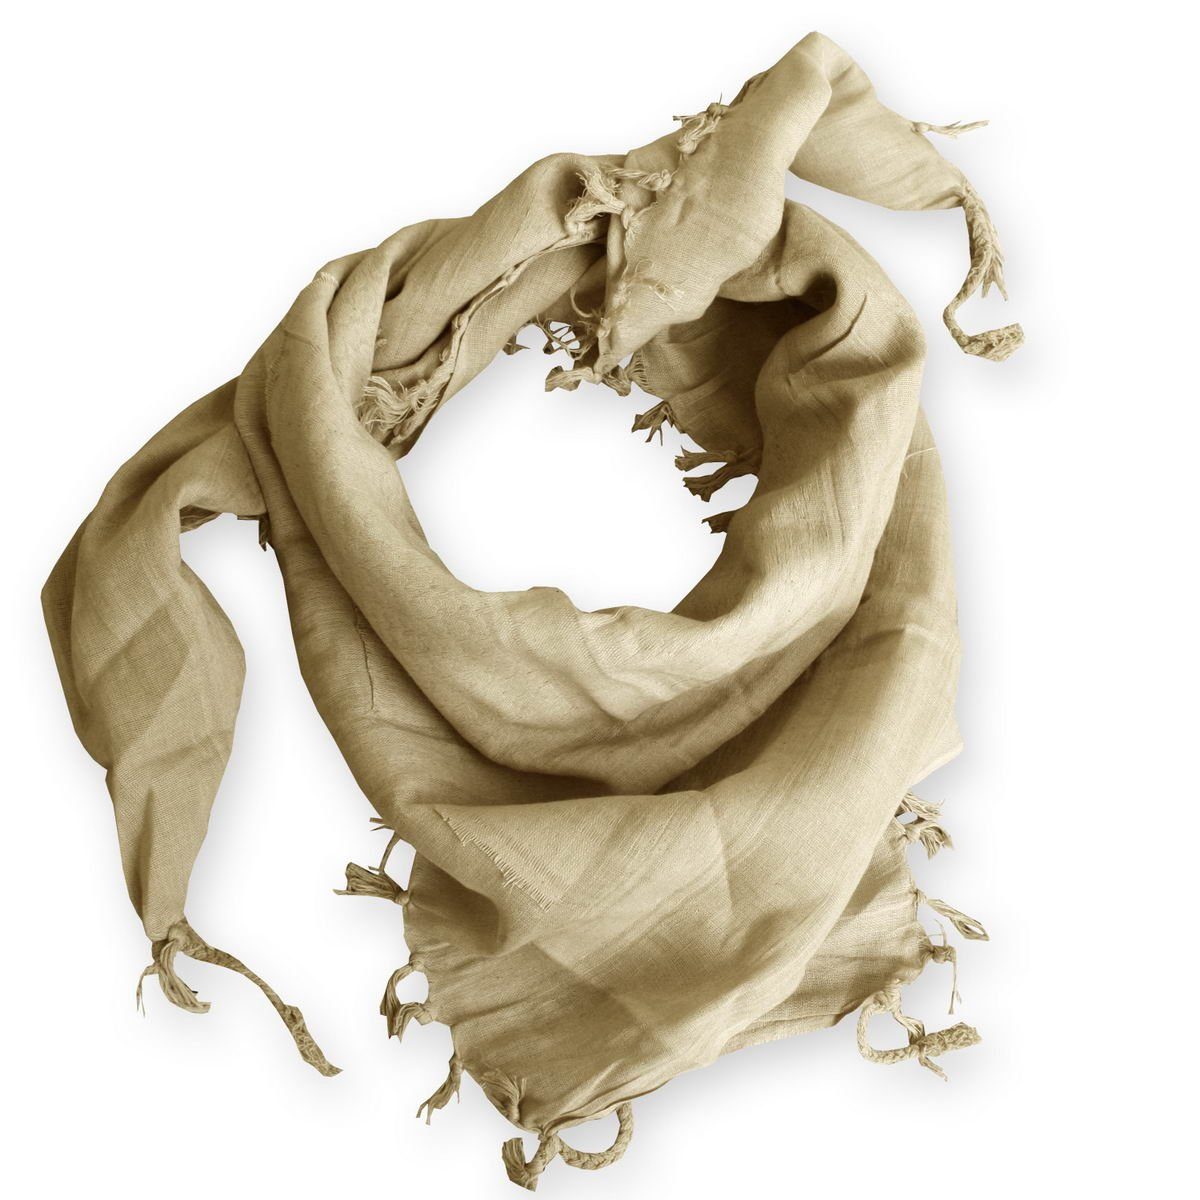 Shemagh Keffieh Cheche Foulard Palestinien Coloris Sable